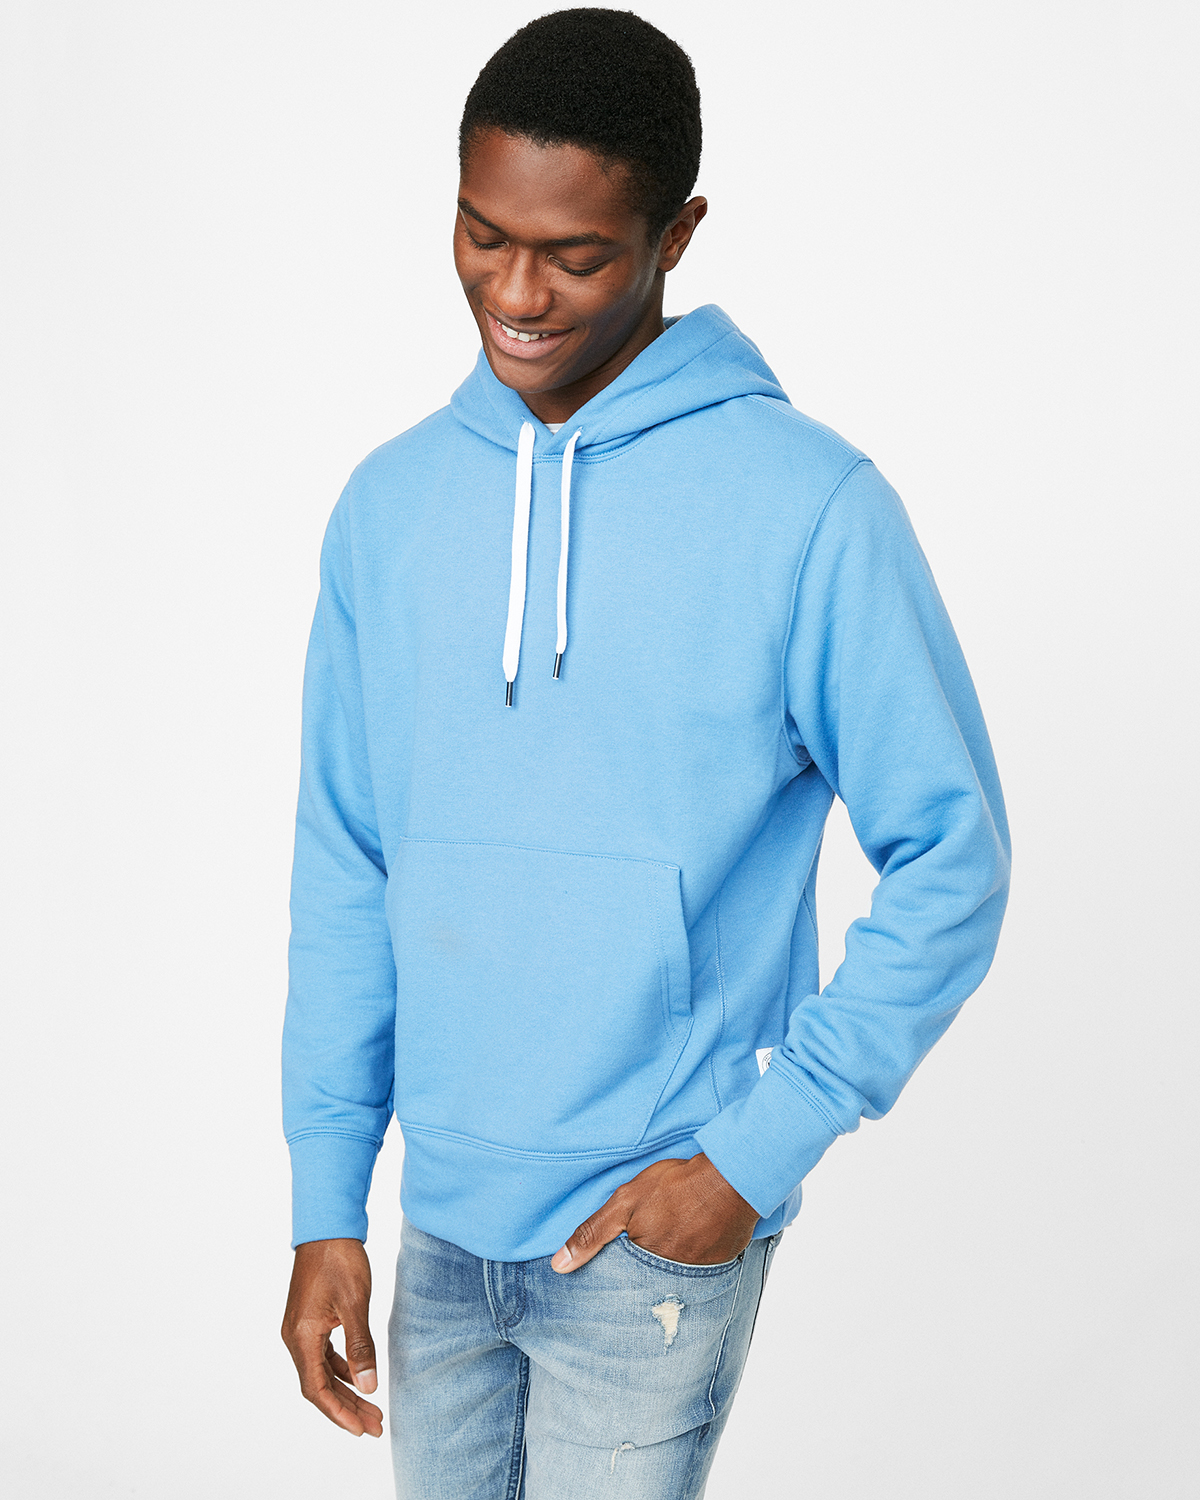 mens-light-blue-fleece-hoodie